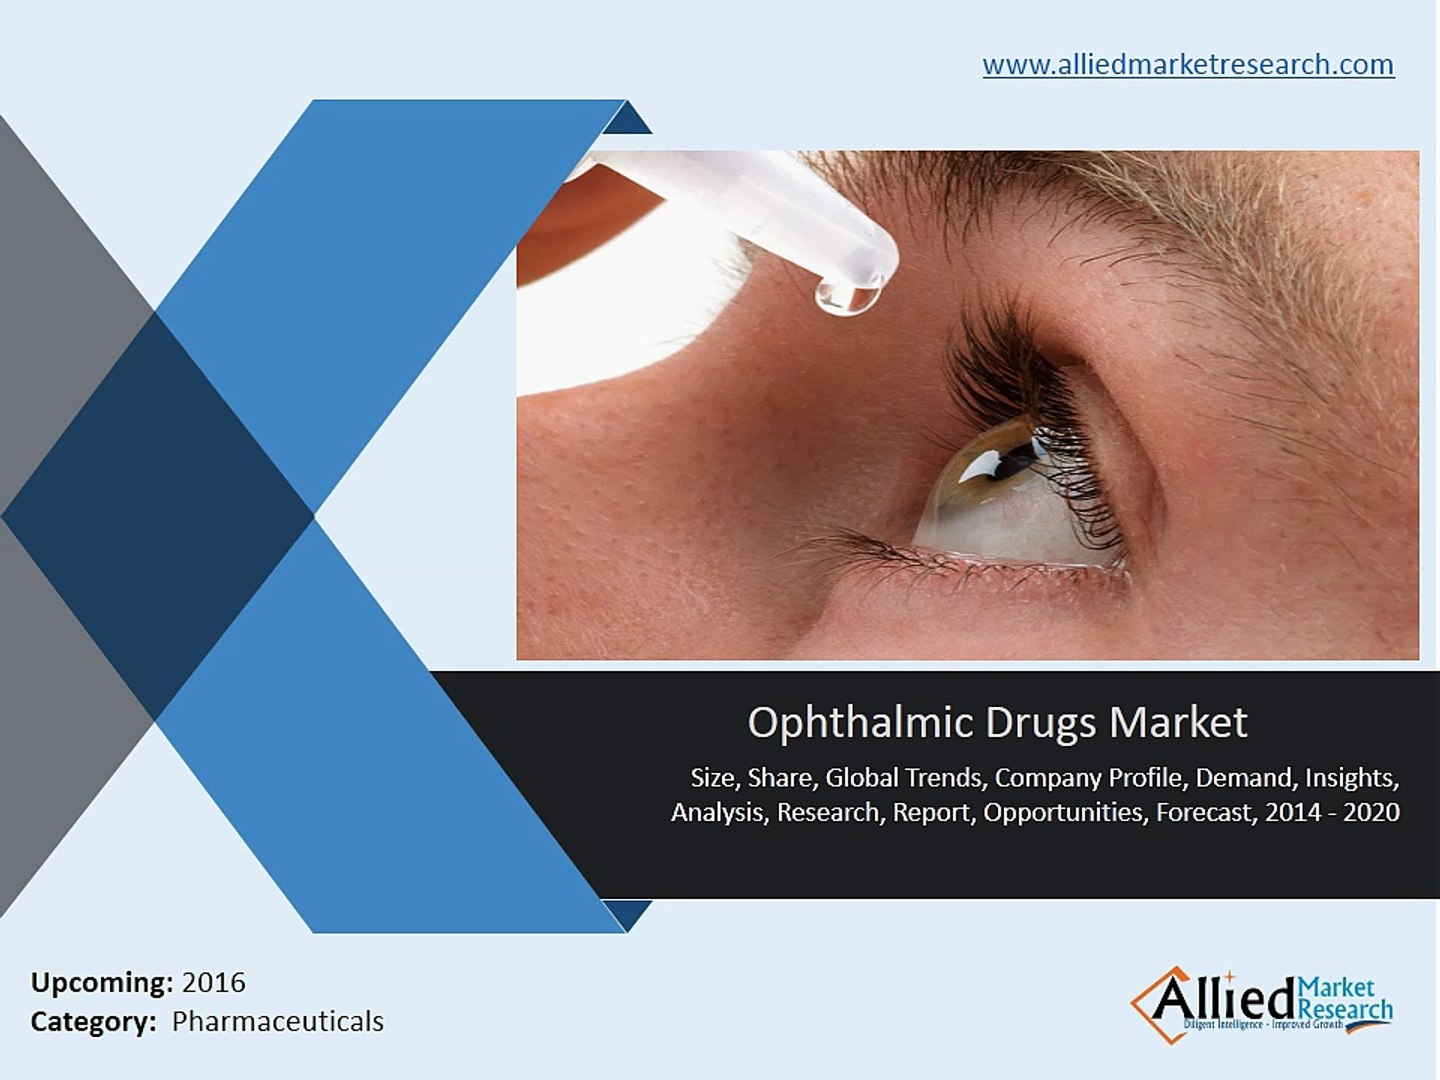 Ophthalmic Drugs Market by Targated drugs and types